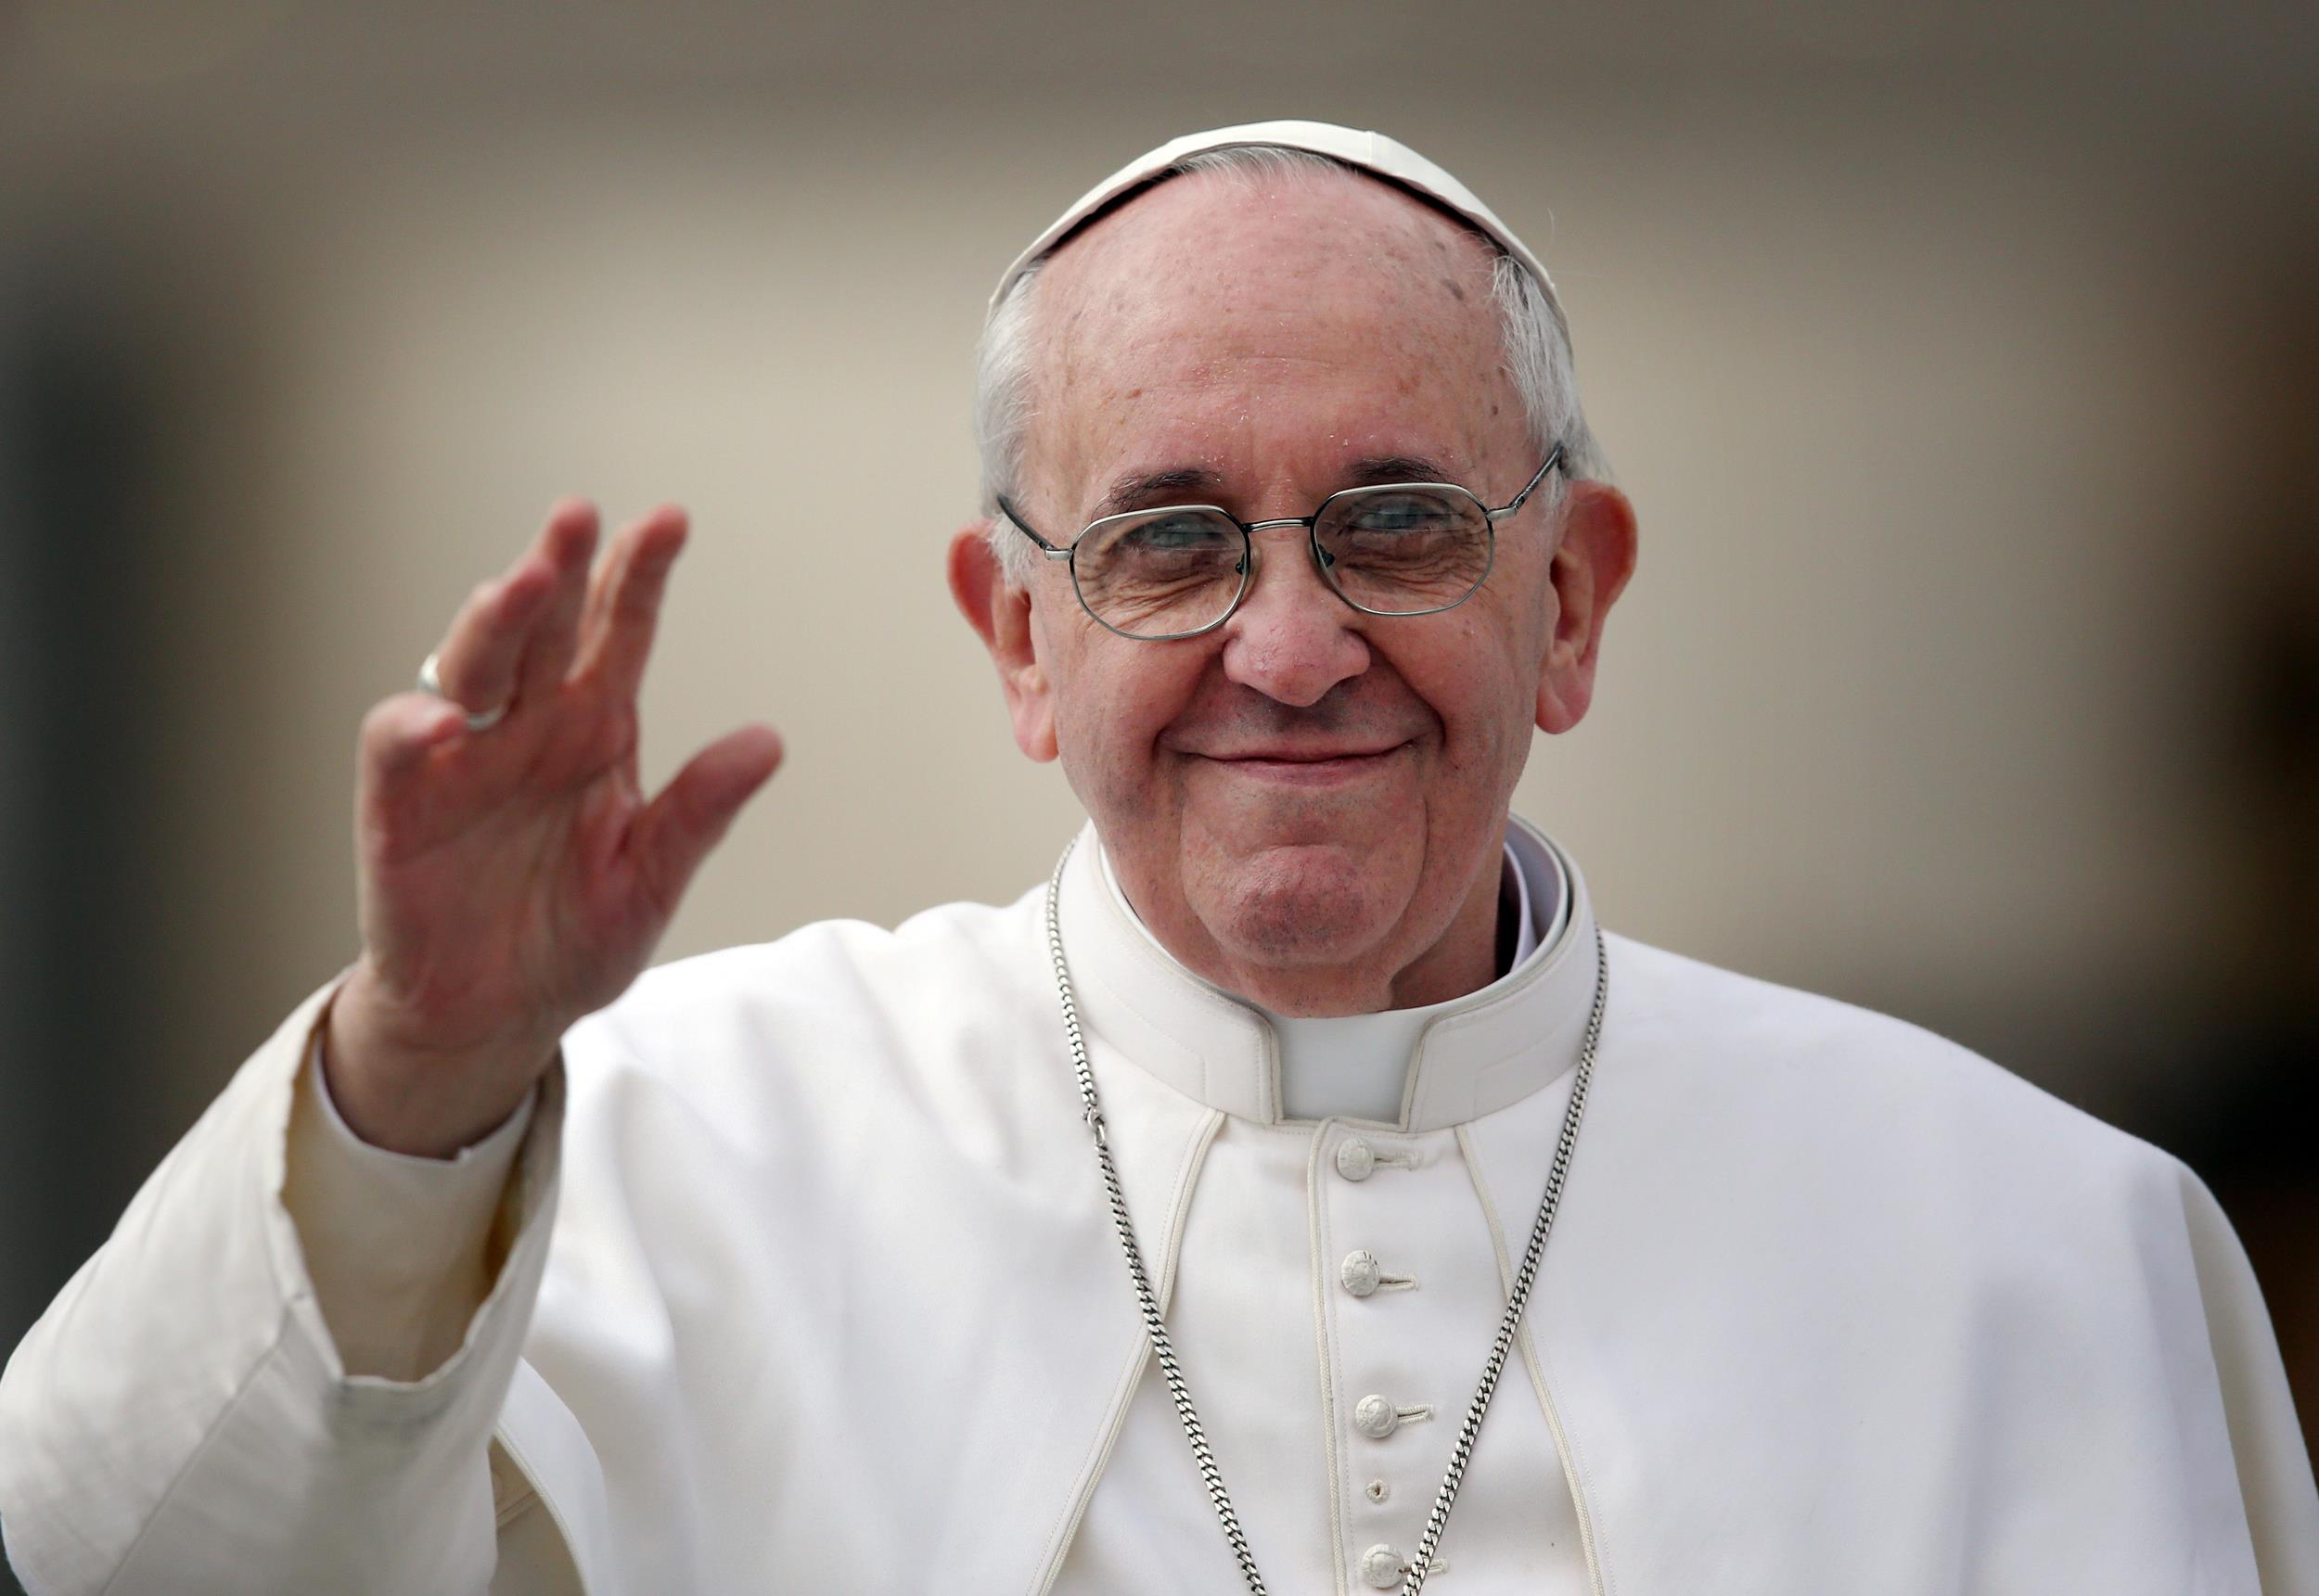 Pope Francis I - Holy Father - Vatican City